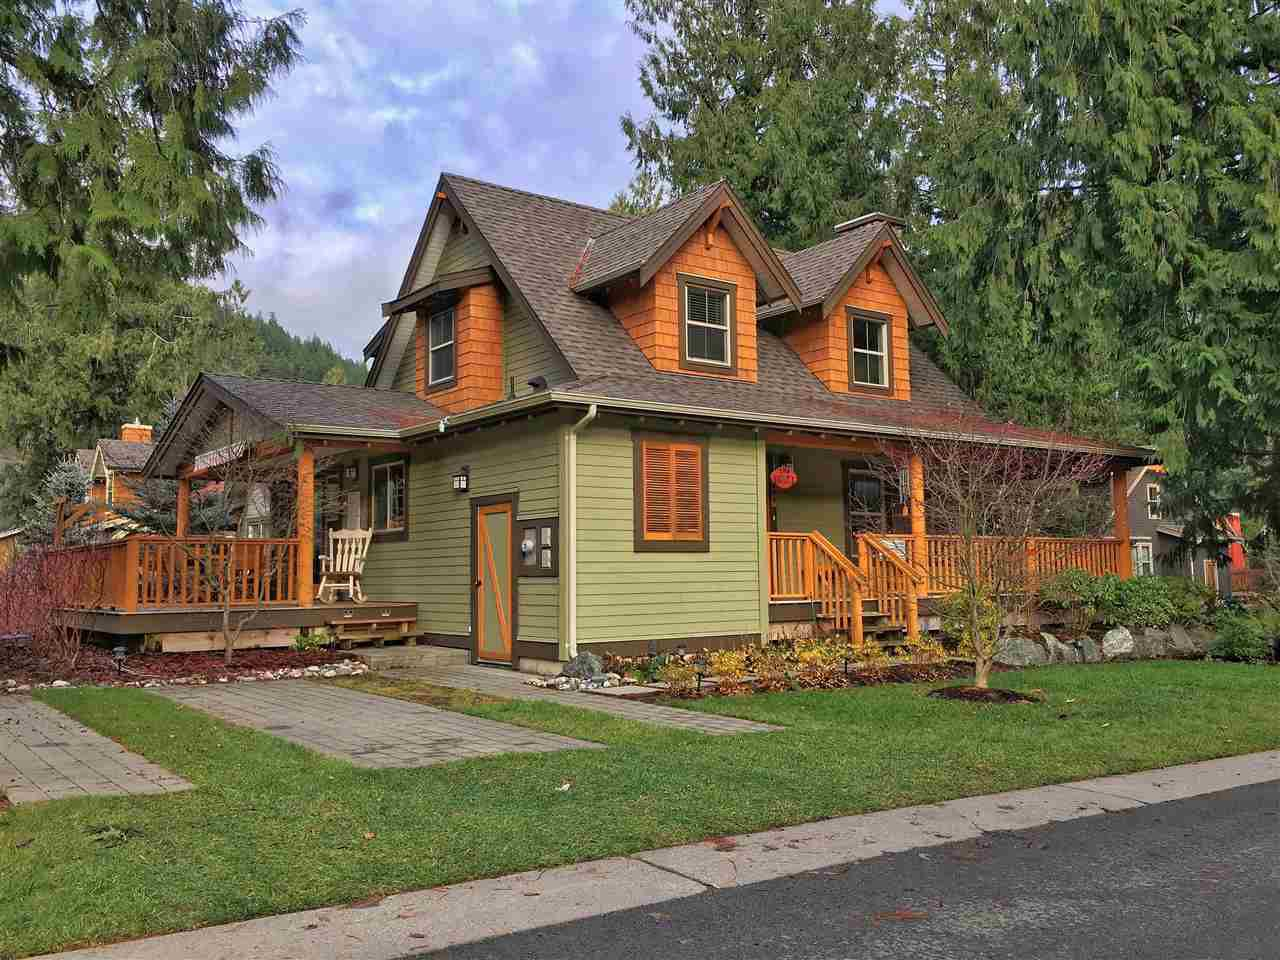 """Main Photo: 1803 RAVENWOOD Trail: Lindell Beach House for sale in """"THE COTTAGES AT CULTUS LAKE"""" (Cultus Lake)  : MLS®# R2226128"""